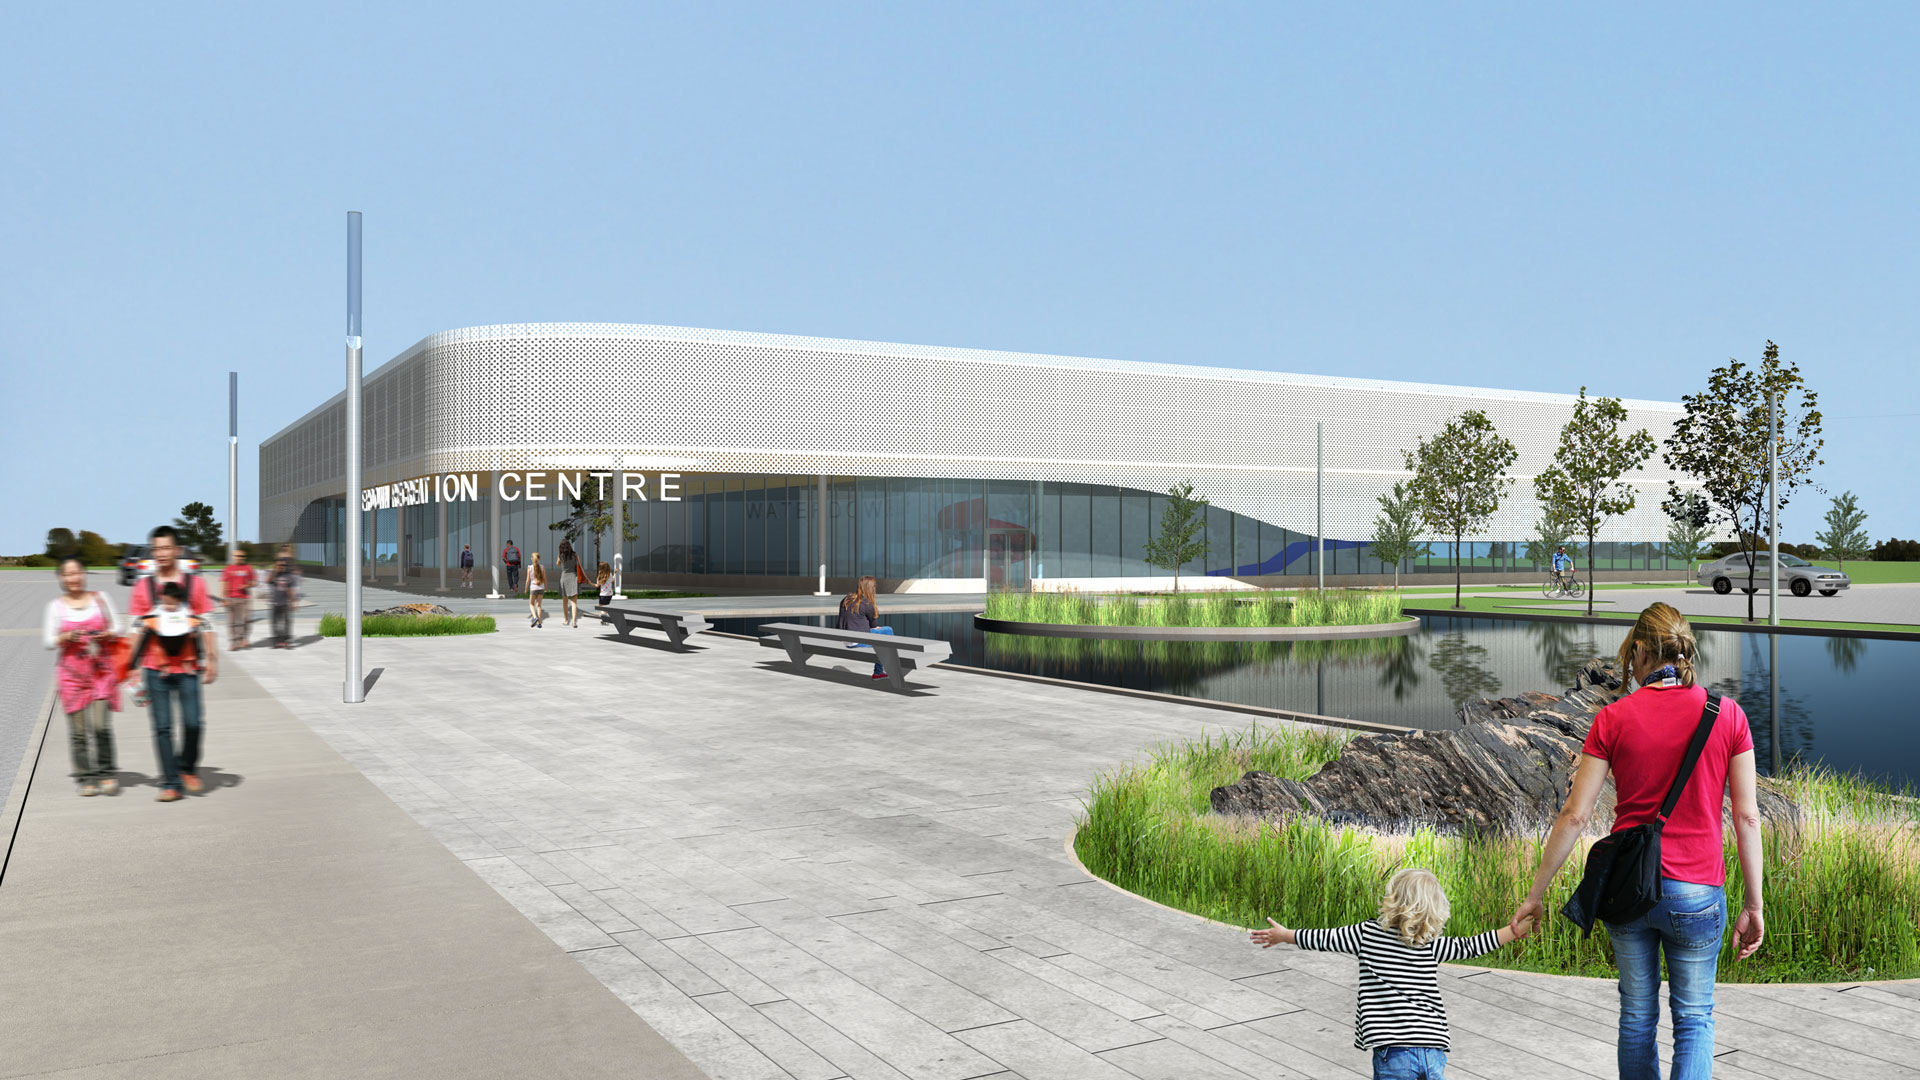 Exterior rendering of the building showing the entrance, pond and landscape